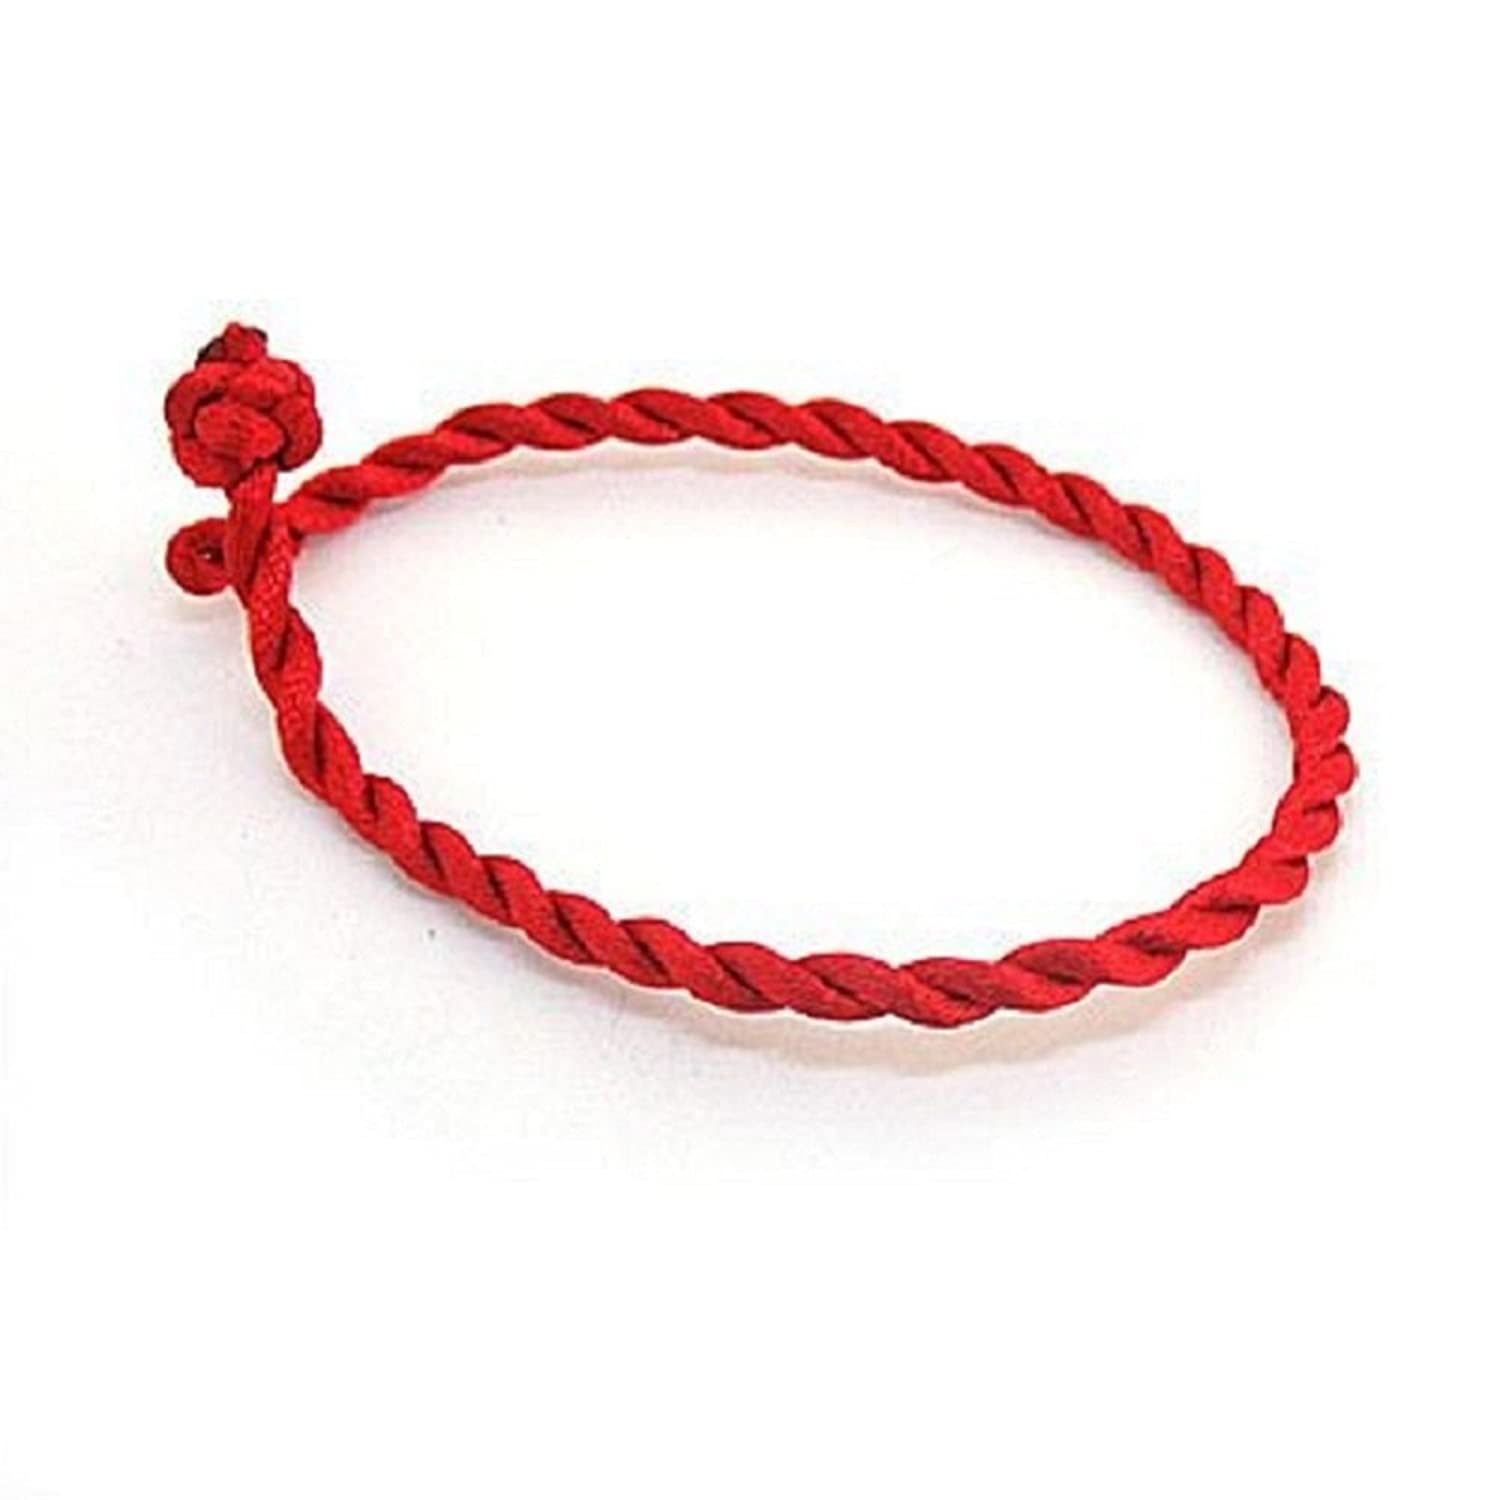 support ribbon made red week personalized custom bracelets bracelet wristbands blog